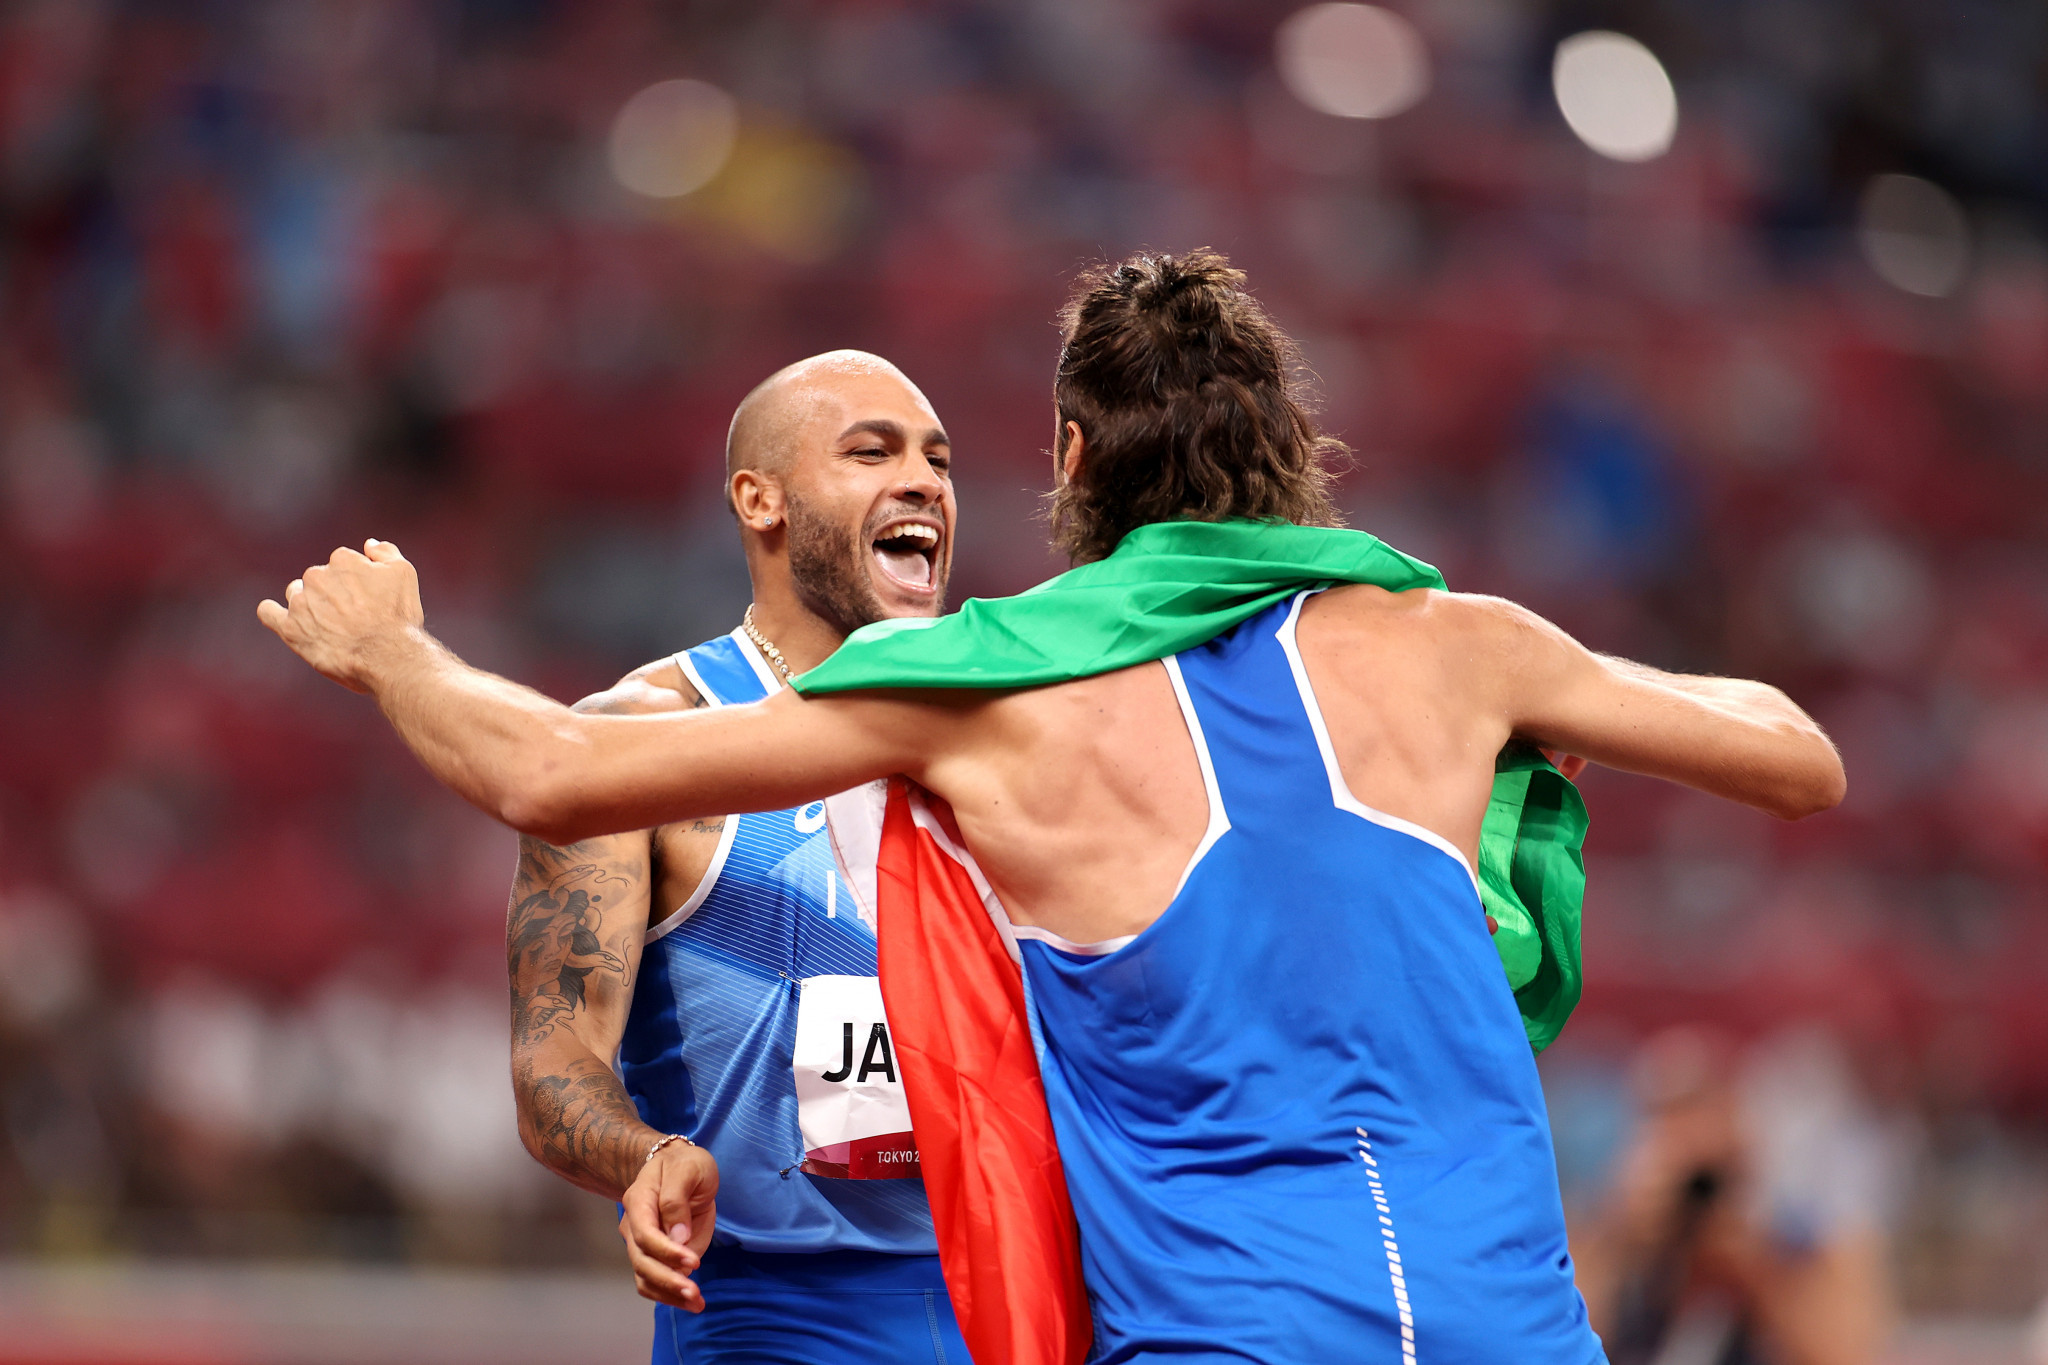 Italy enjoyed a sensational day at the Olympic Stadium in Tokyo, winning two of the most coveted medals of the Games ©Getty Images